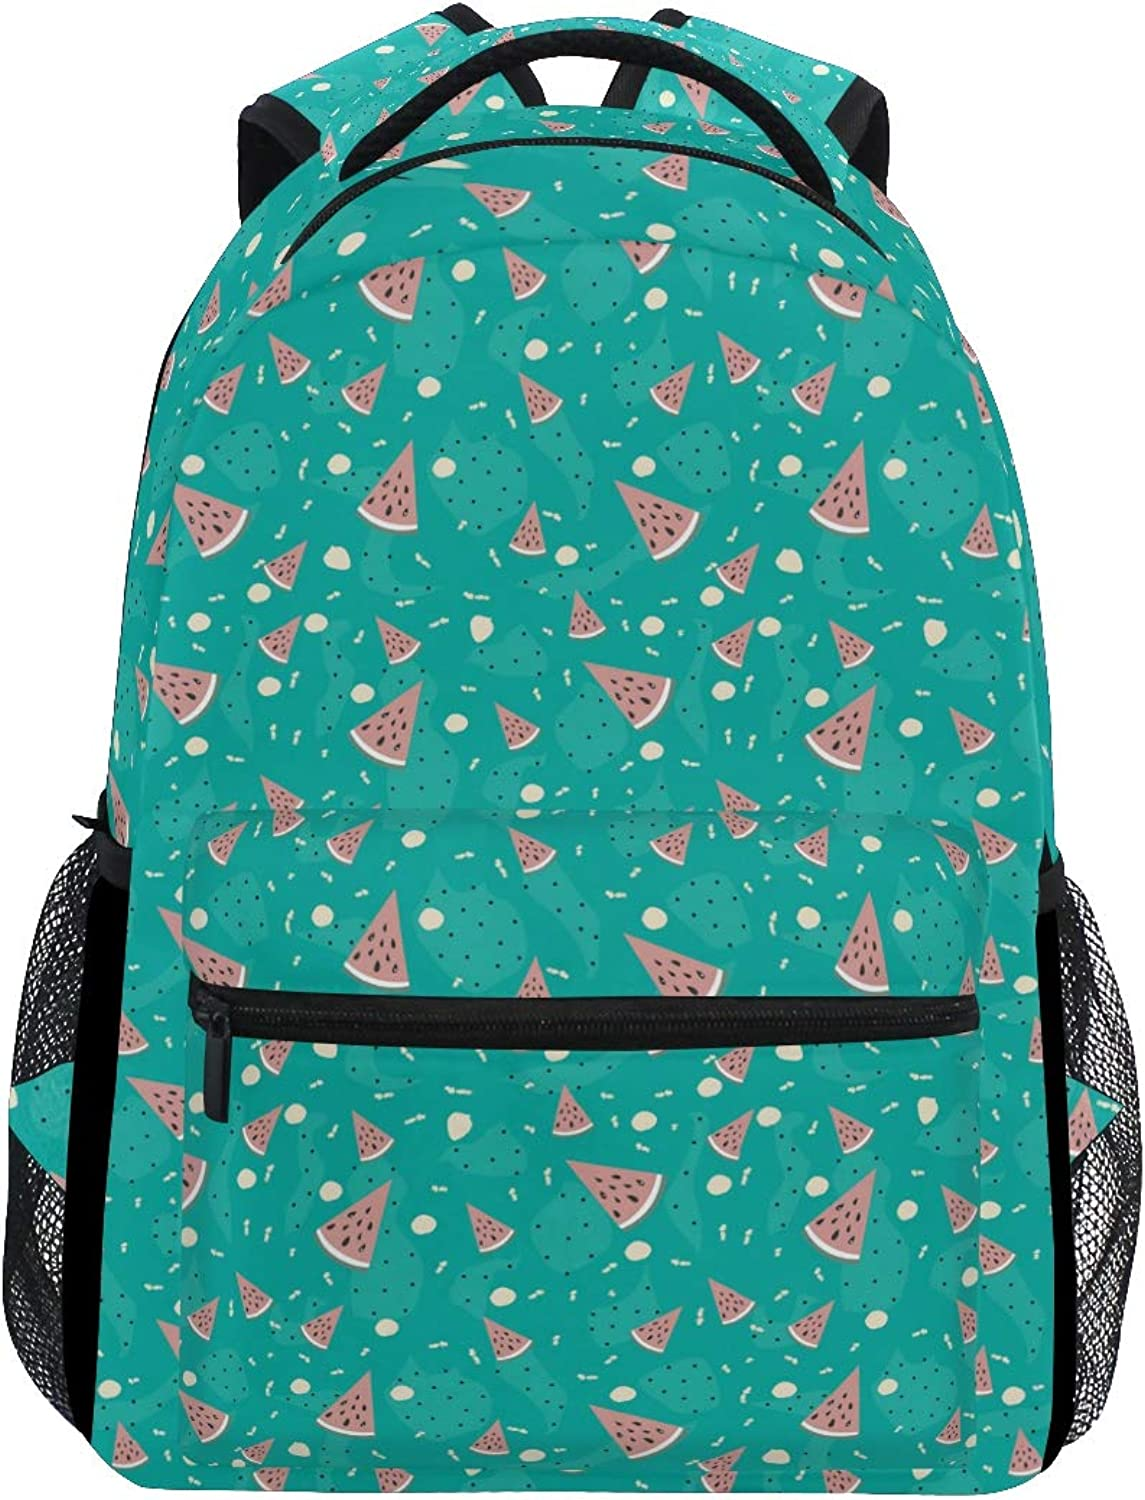 Summer Watermelon Green Trekking Backpack Fashion Backpack Oversized Backpack Men and Women Durable Travel Computer Backpack 17 Inch Notebook Waterproof Large Business Bag